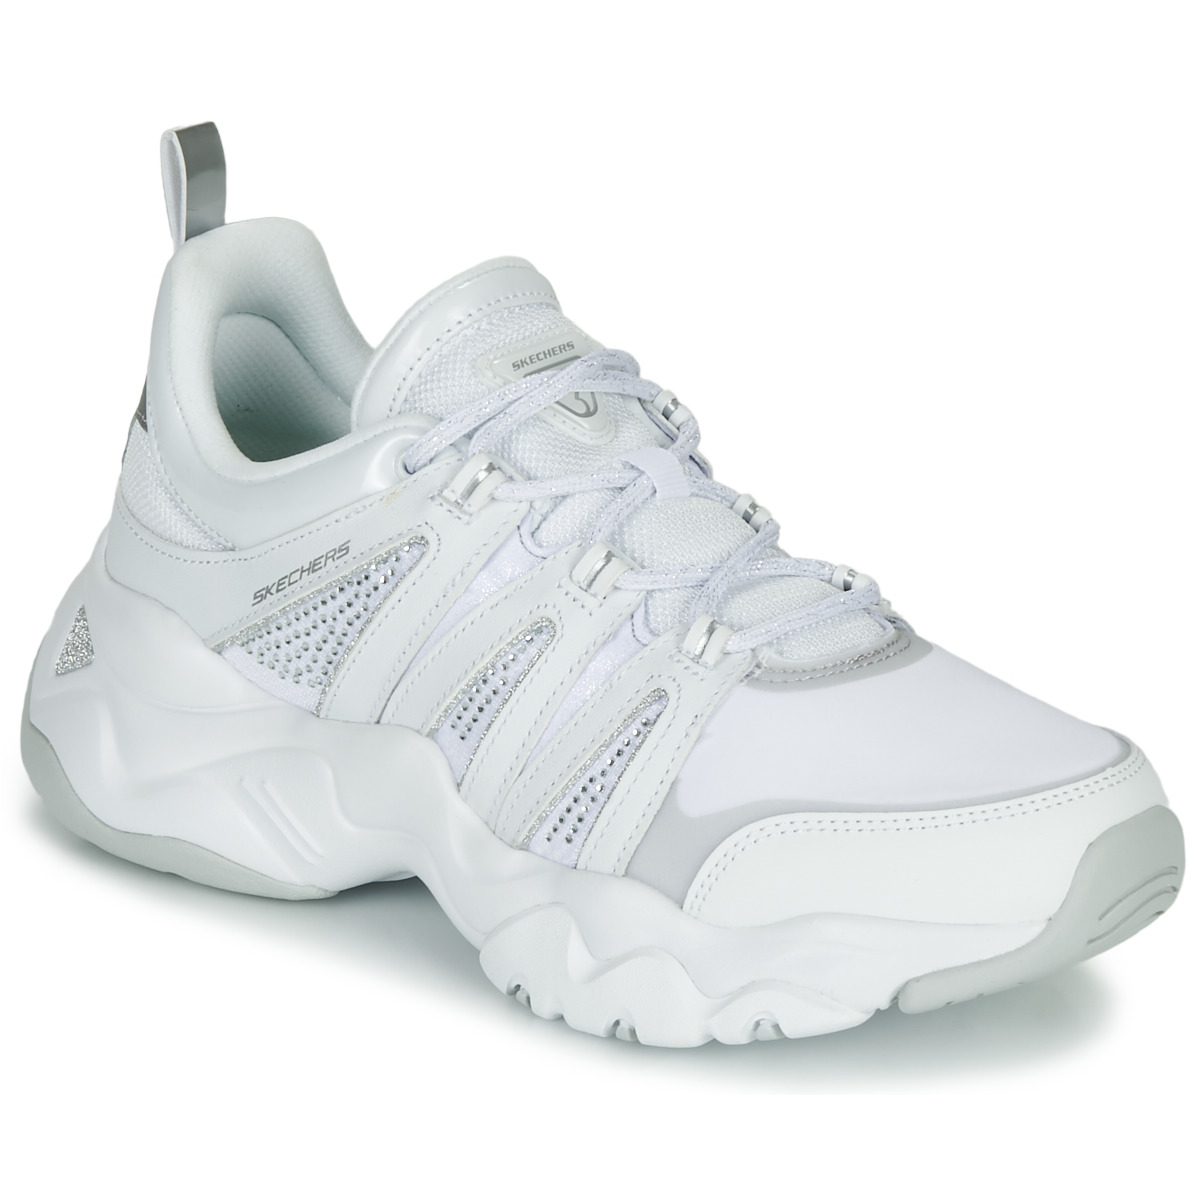 Sneakers Skechers  D'LITES 3.0